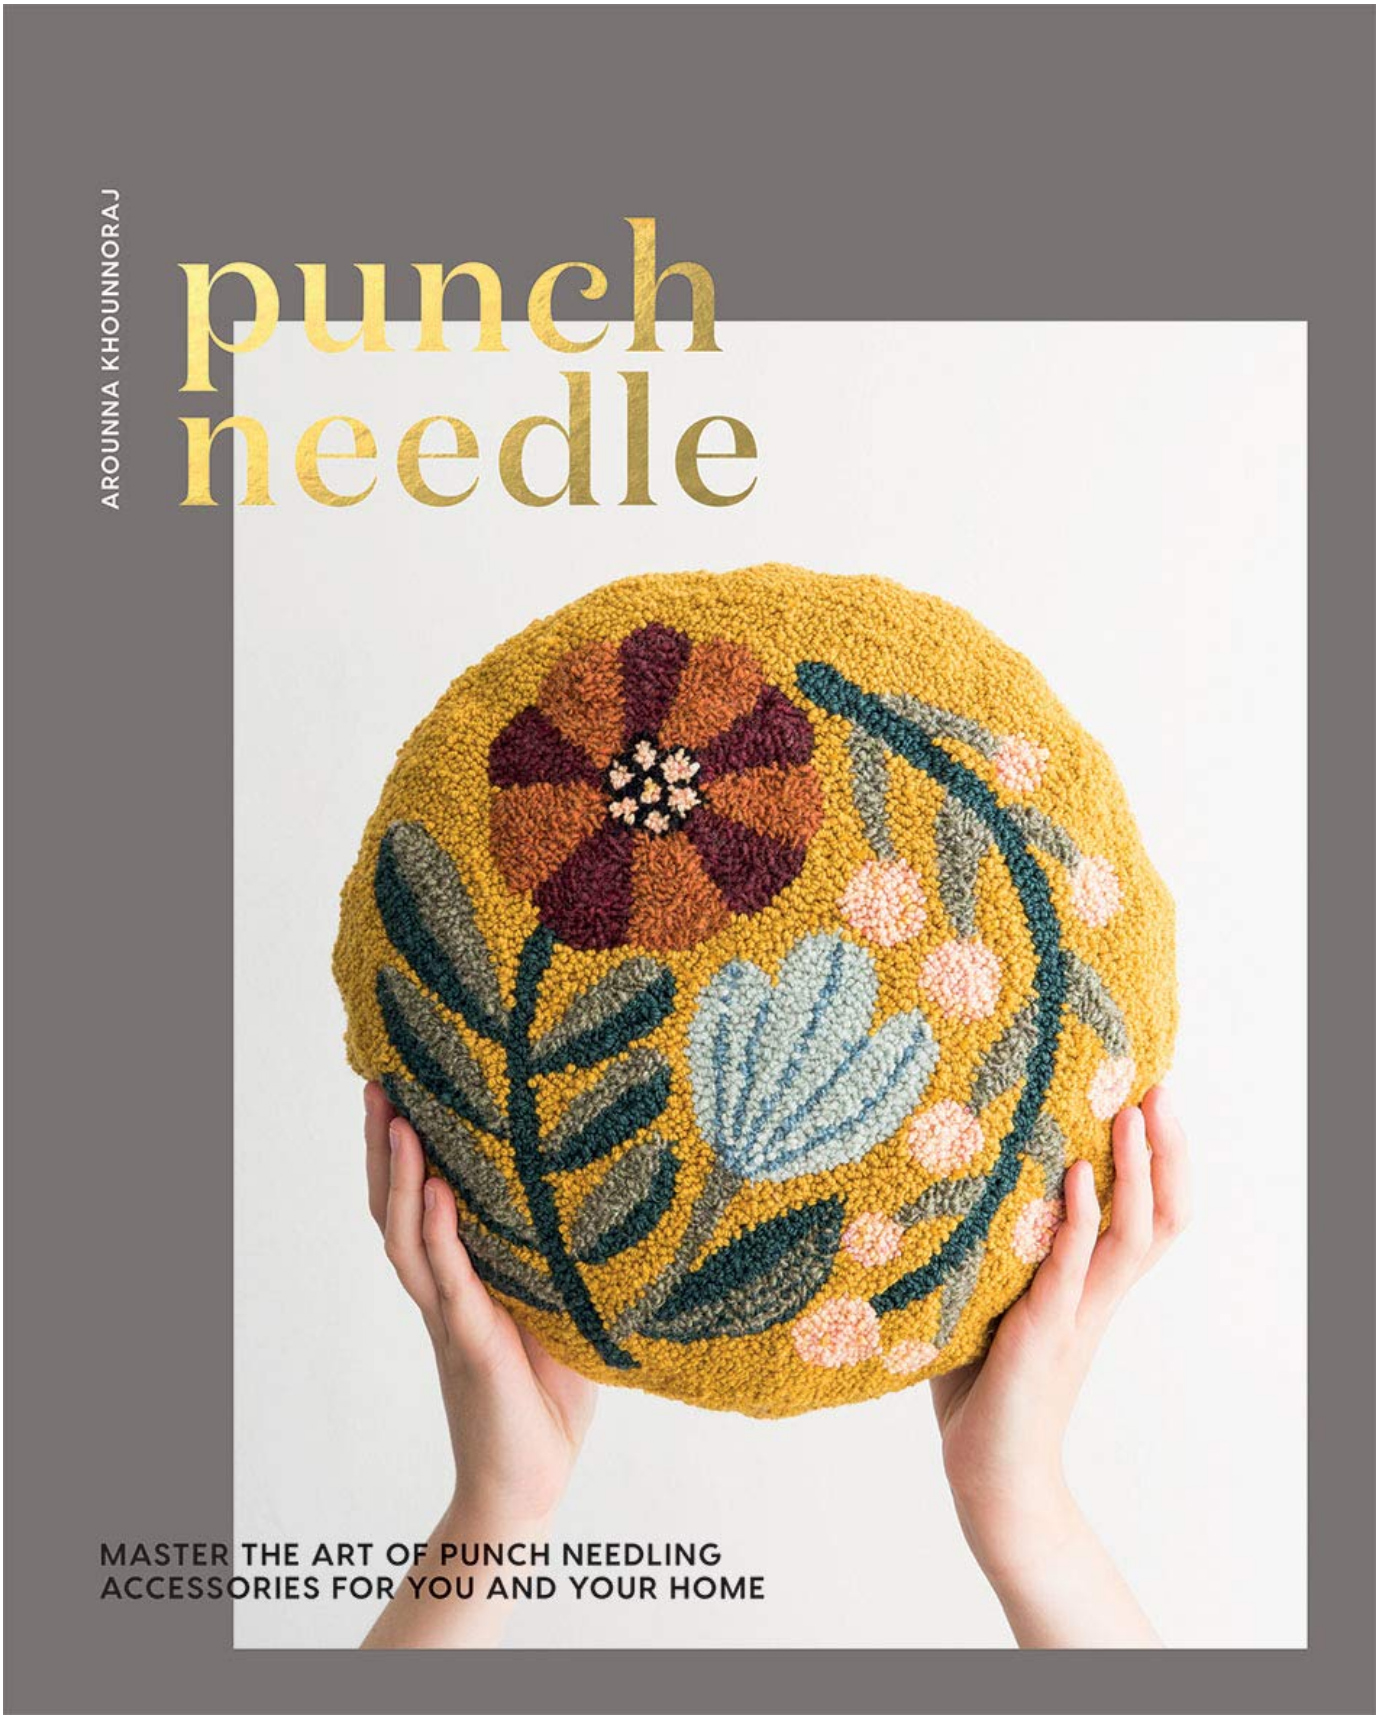 Punch Needle Craft Book by Arounna Khounnoraj photography Catherine Frawley